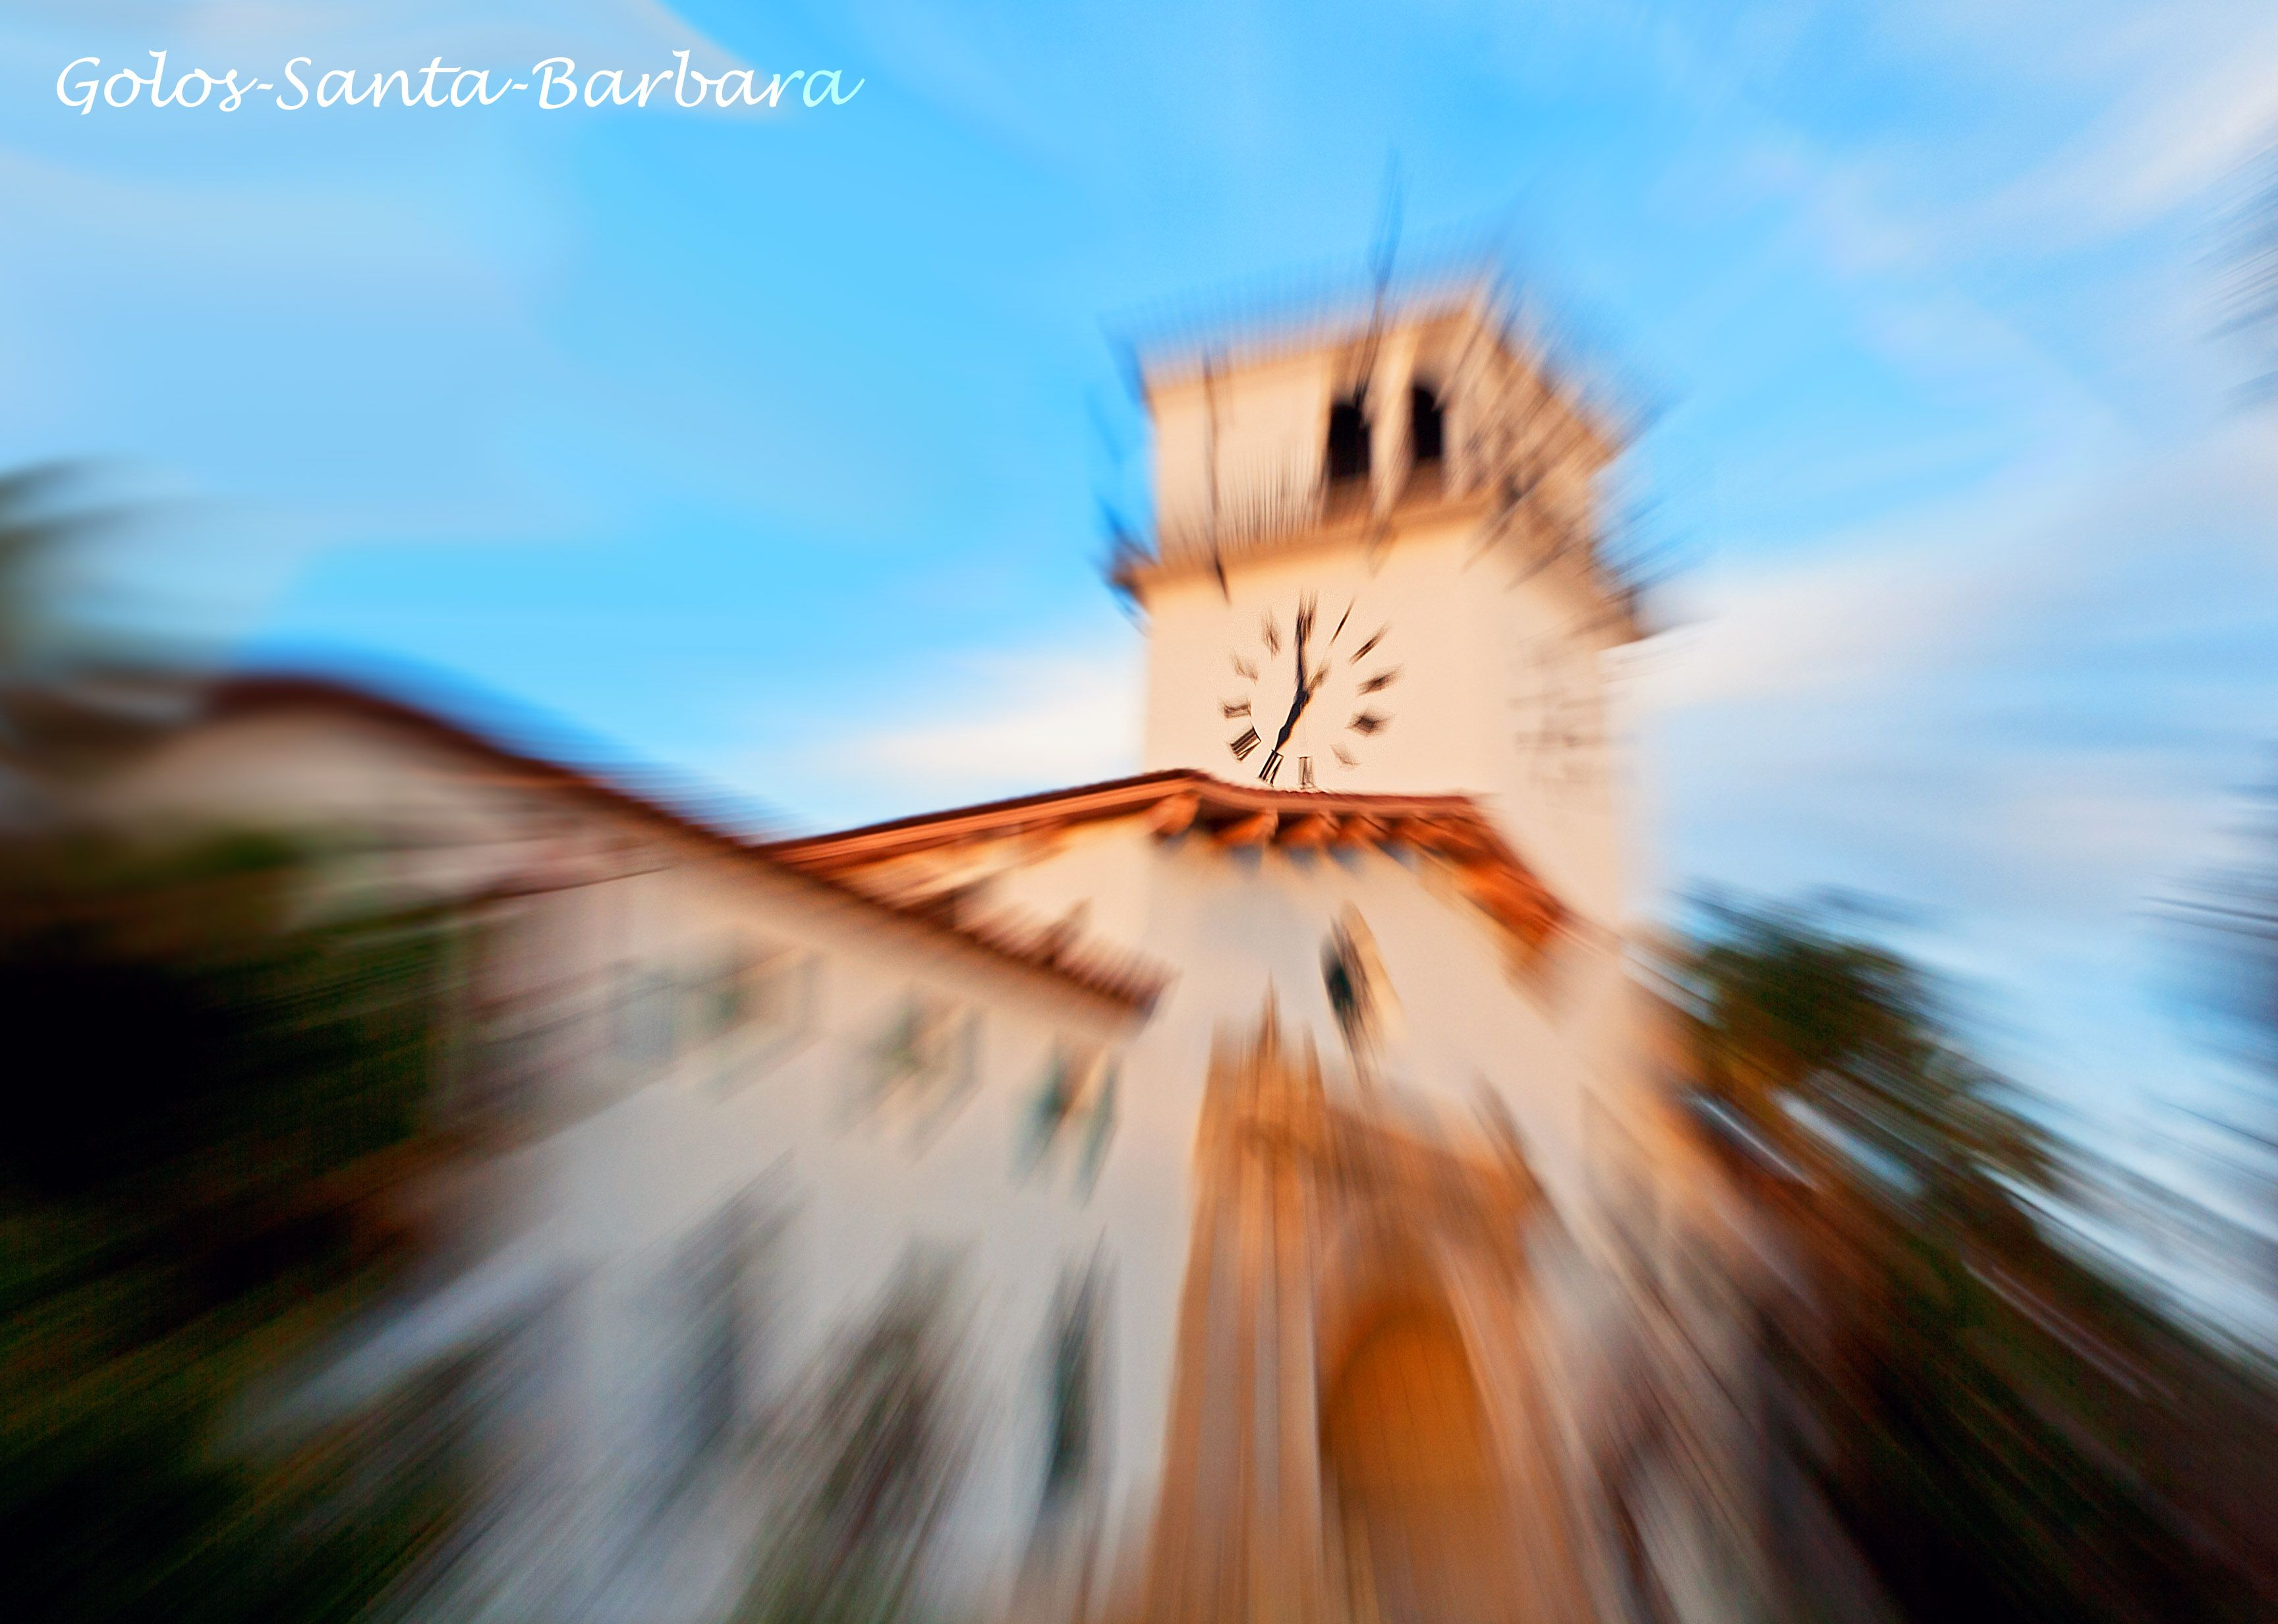 Court House_Santa Barbara.jpg